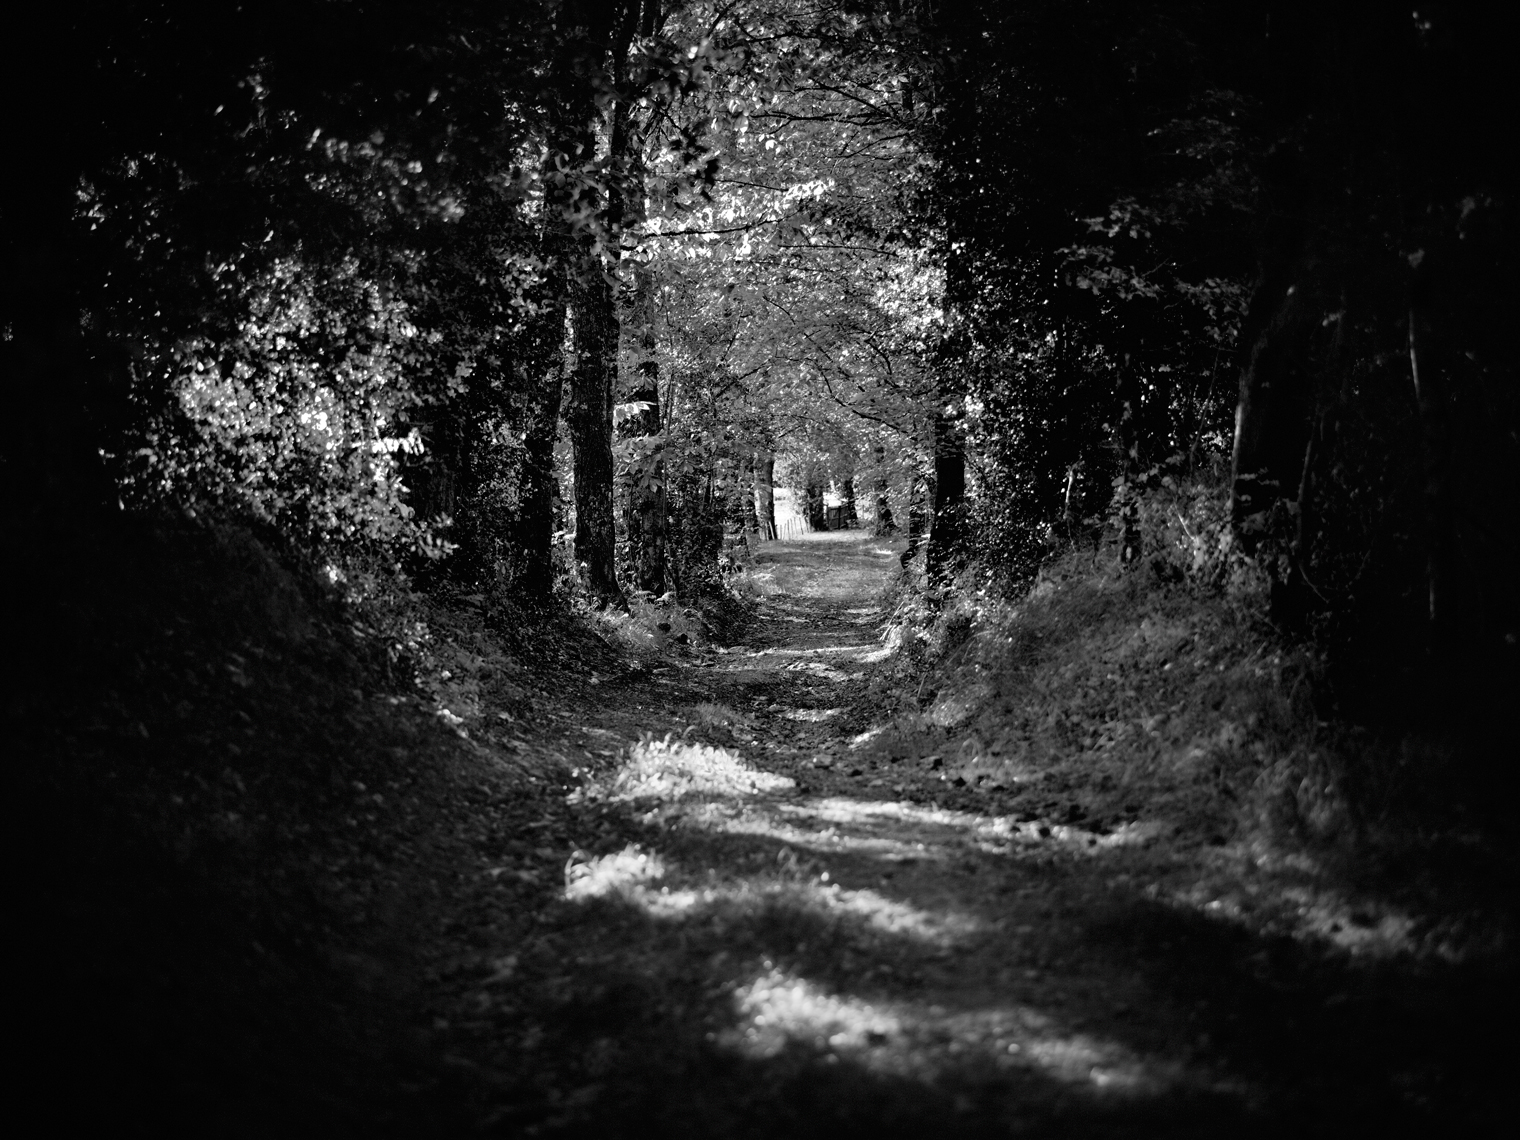 Jon Wyatt Photography - Woodland path near Vayres in Limousin, France